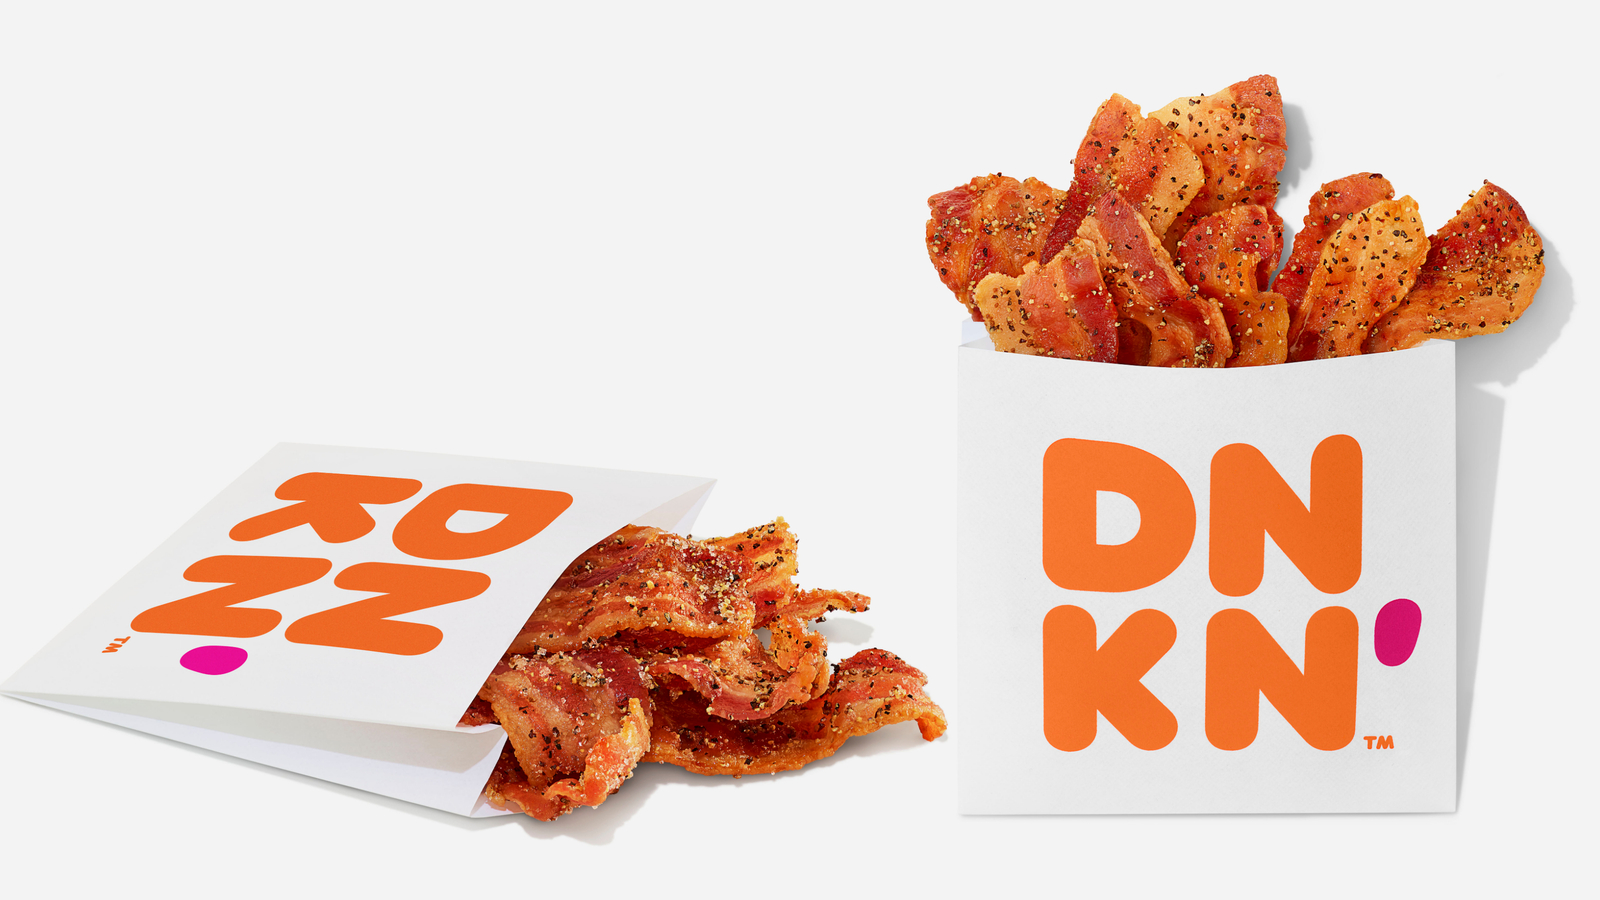 Dunkin's latest release is quite simply a bag of bacon